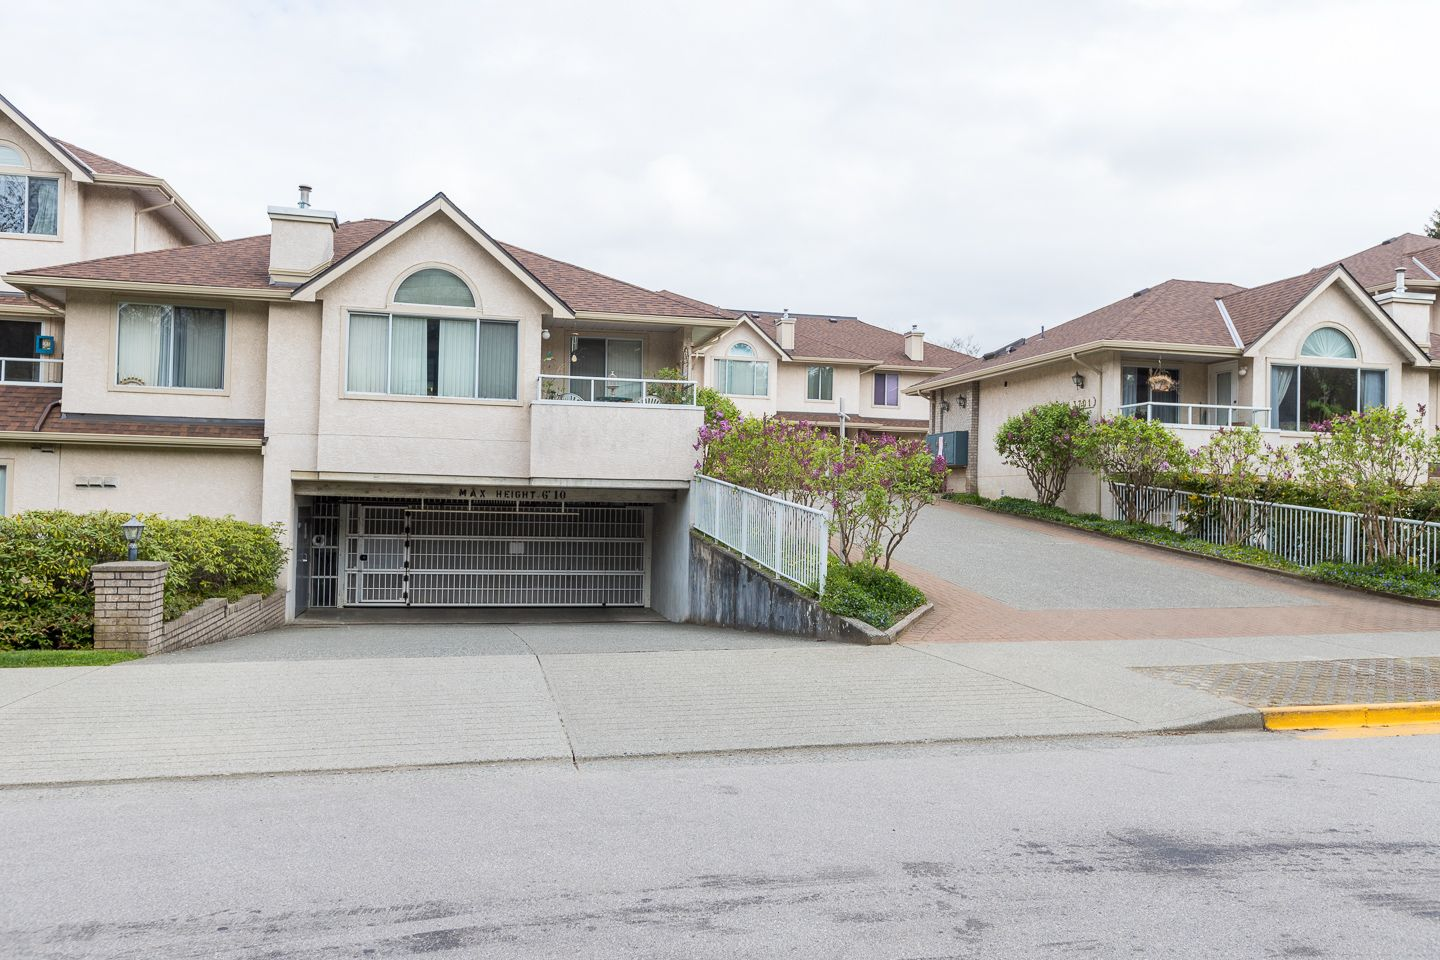 Photo 22: Photos: #8-3701 THURSTON ST in BURNABY: Central Park BS Condo for sale (Burnaby South)  : MLS®# R2572861